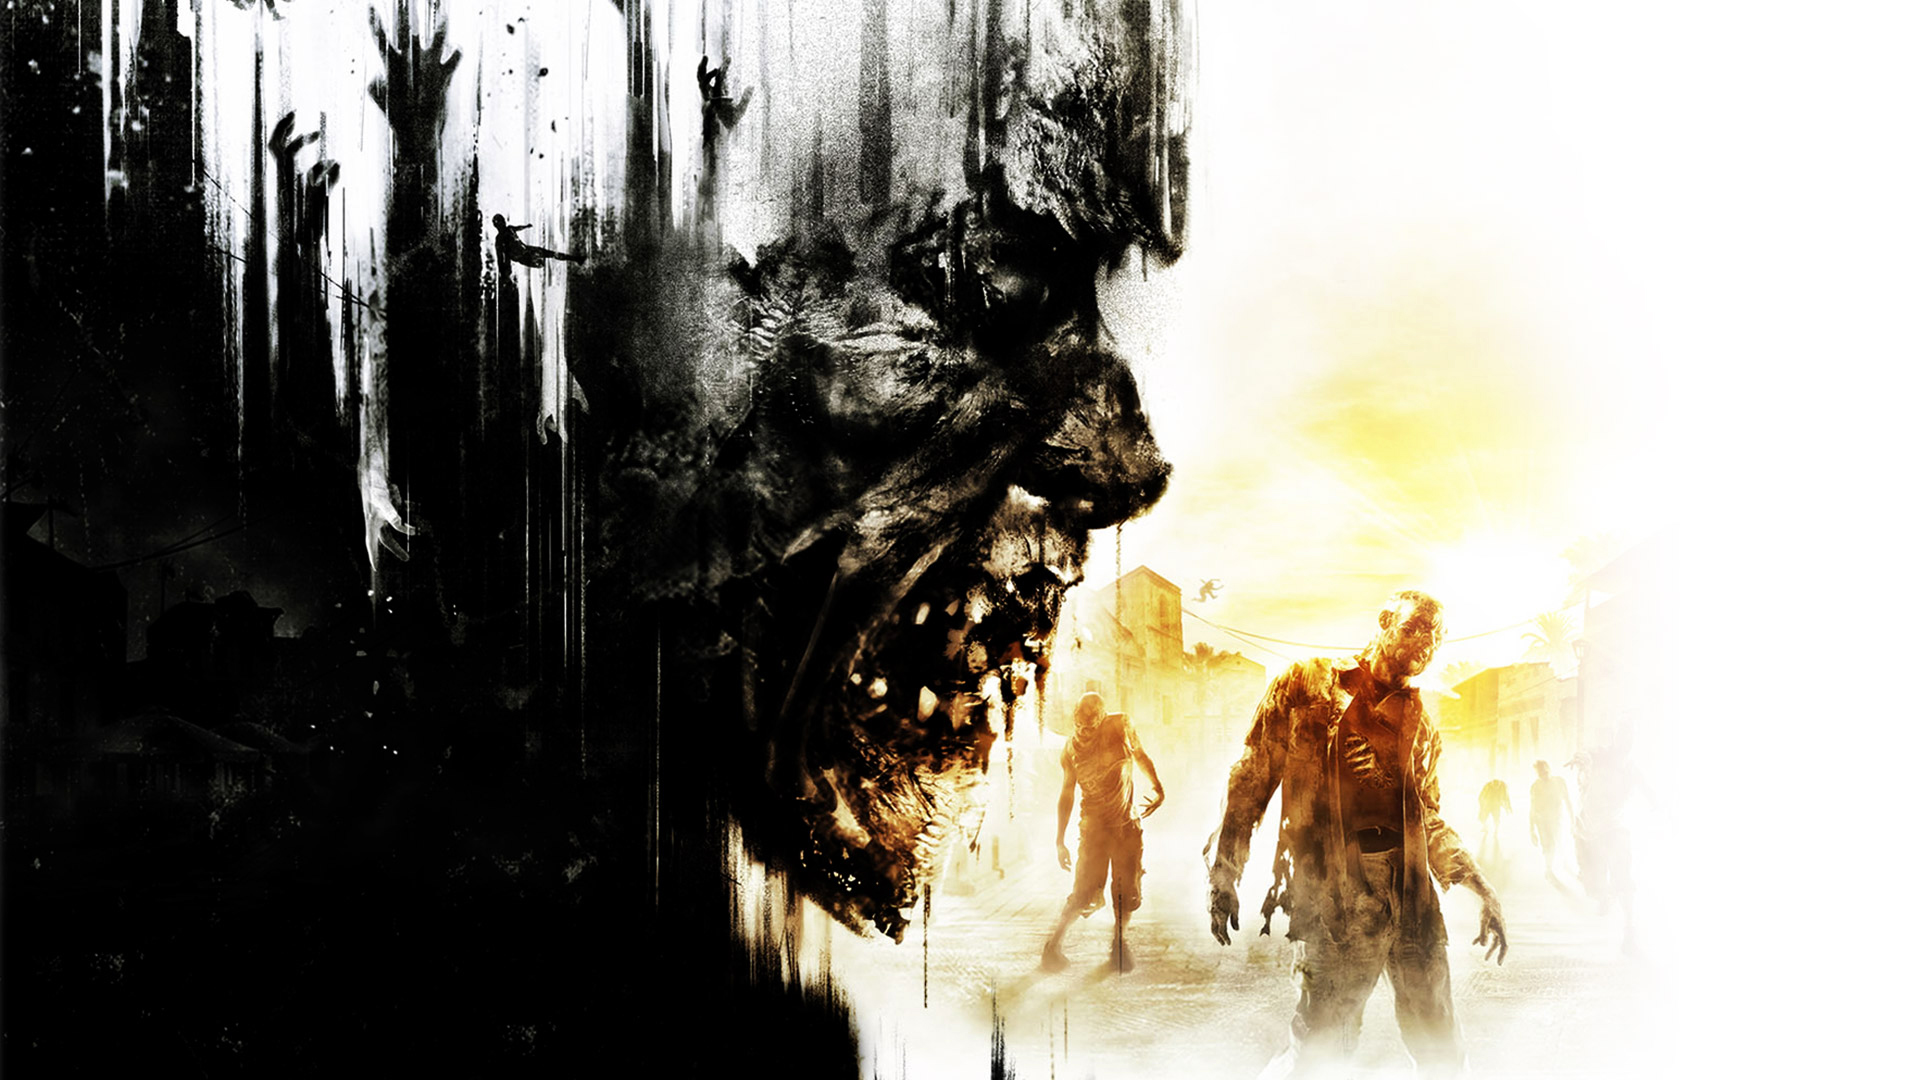 dying light game hd zombies 1920x1080 1920x1080